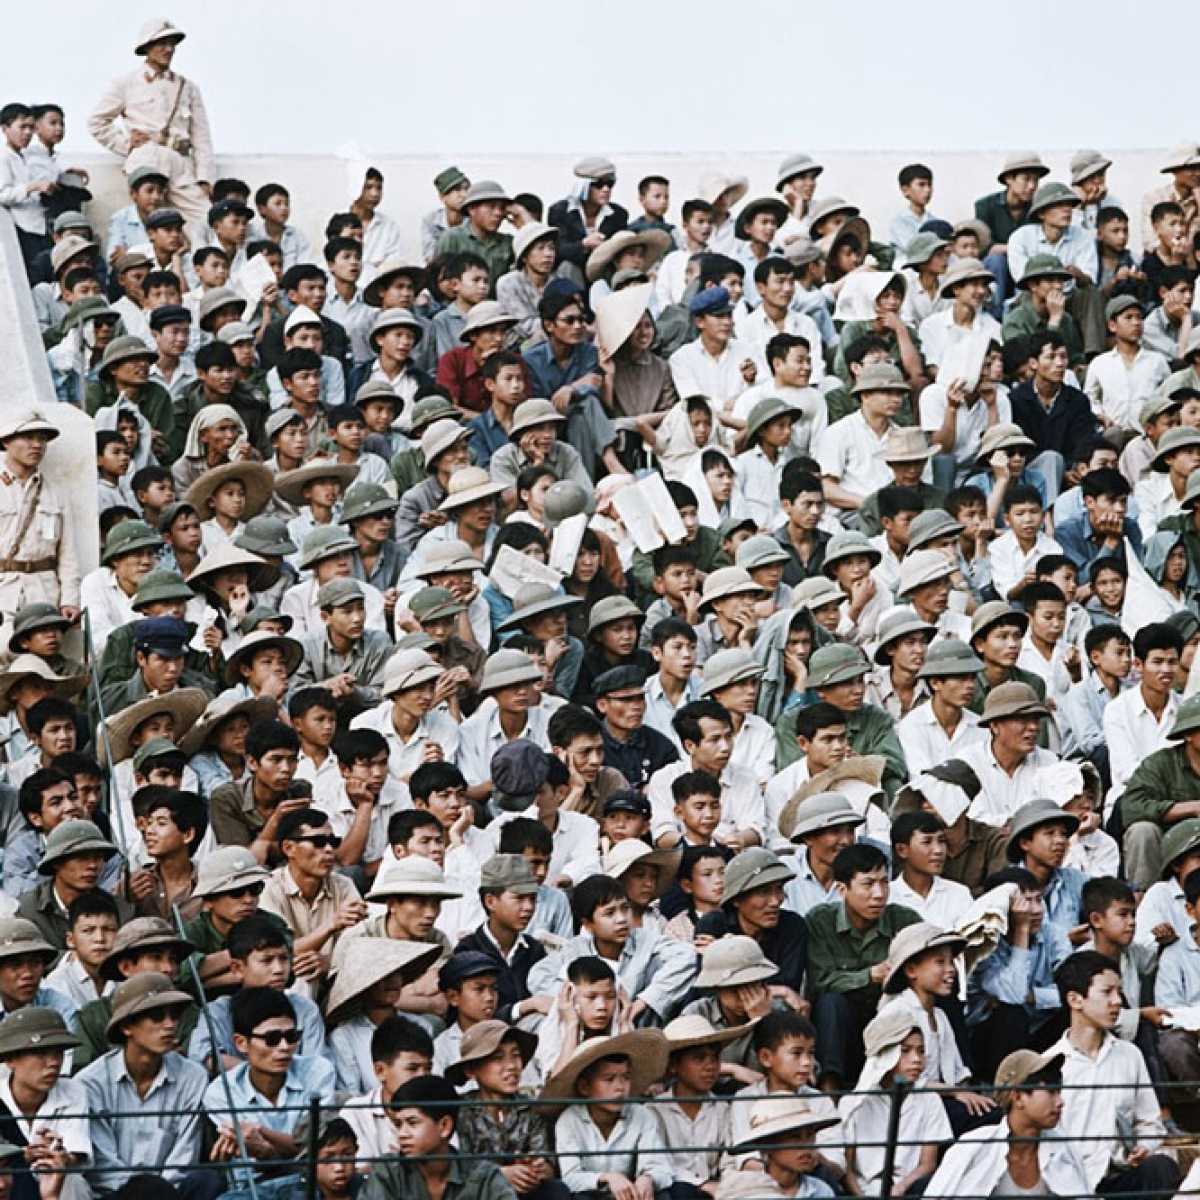 The Hang Day stadium in 1975 is packed with cheering football fans.